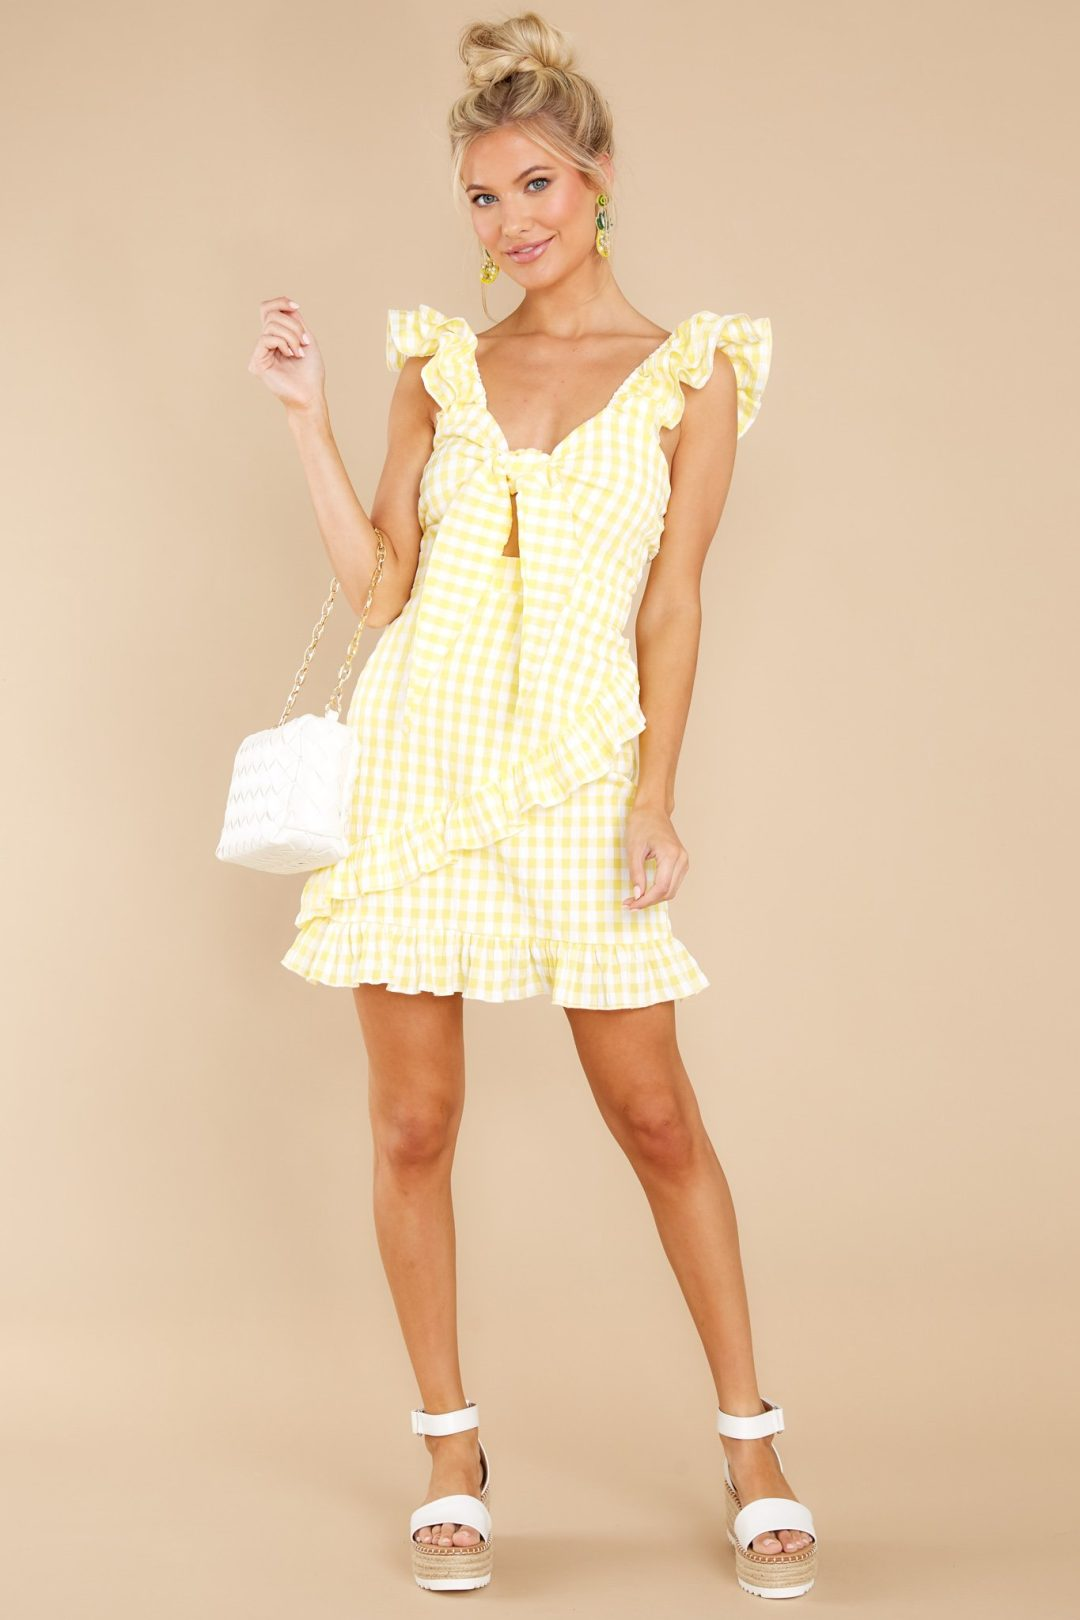 Yellow gingham summer dress from a store like Selfie Leslie